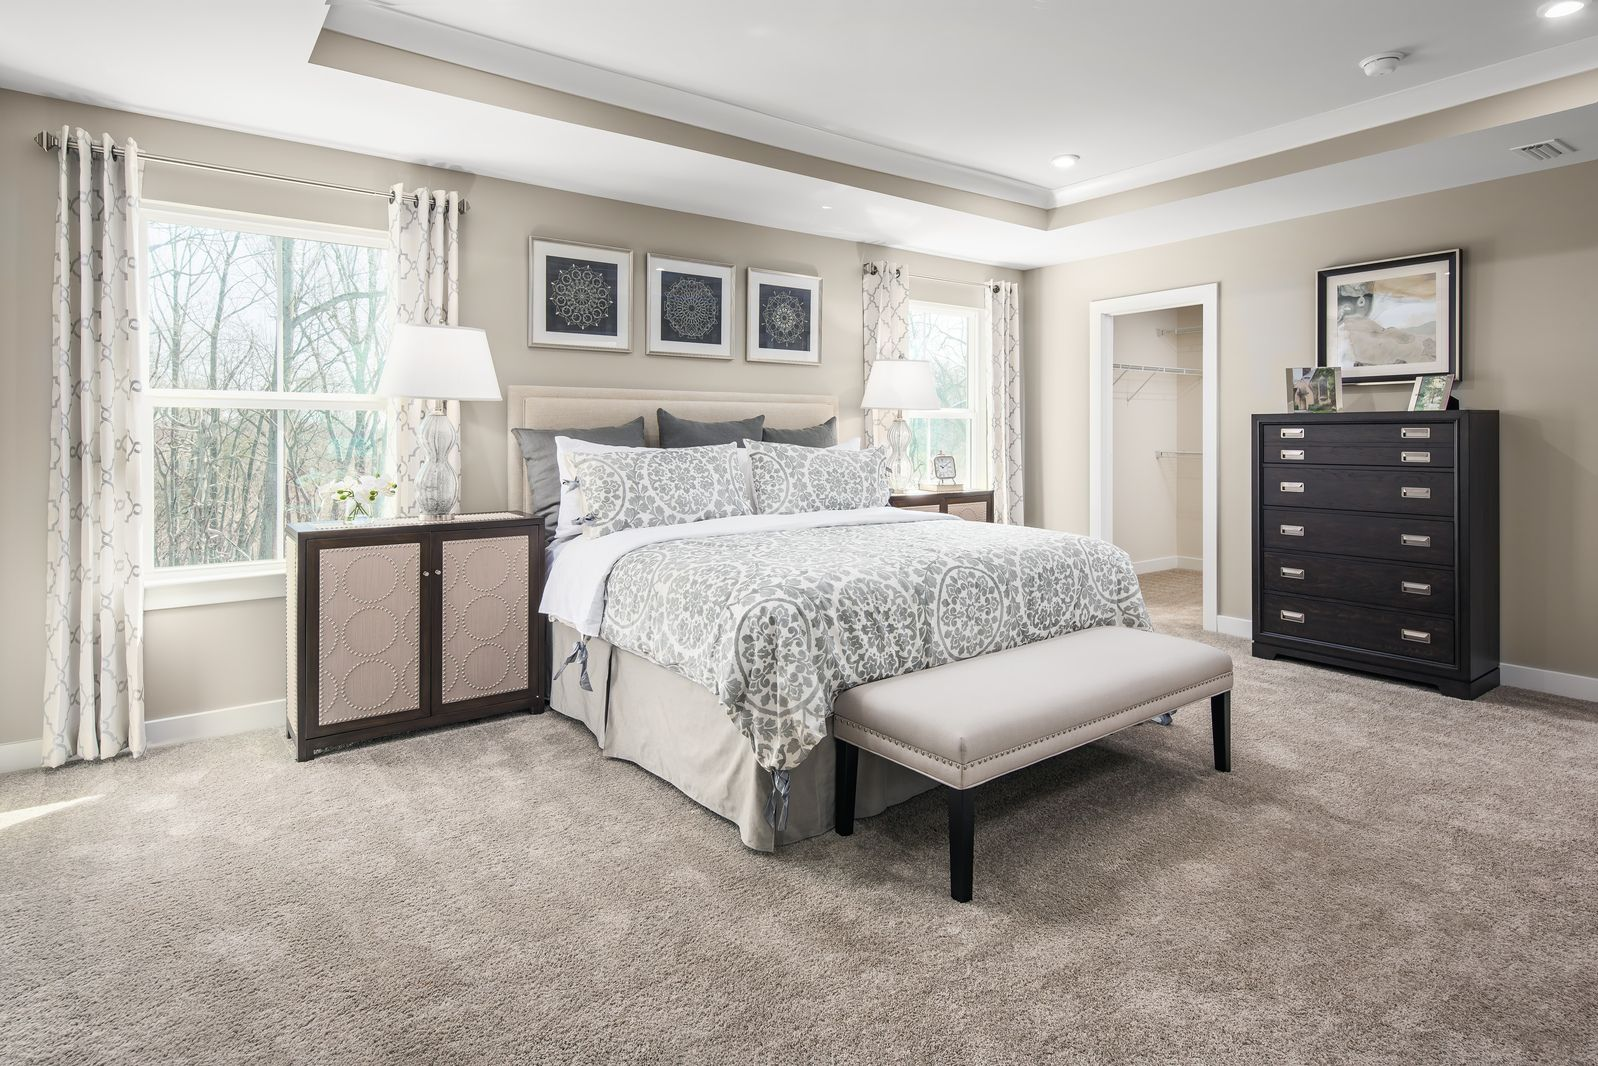 Bedroom featured in the Seneca By Ryan Homes in Washington, MD